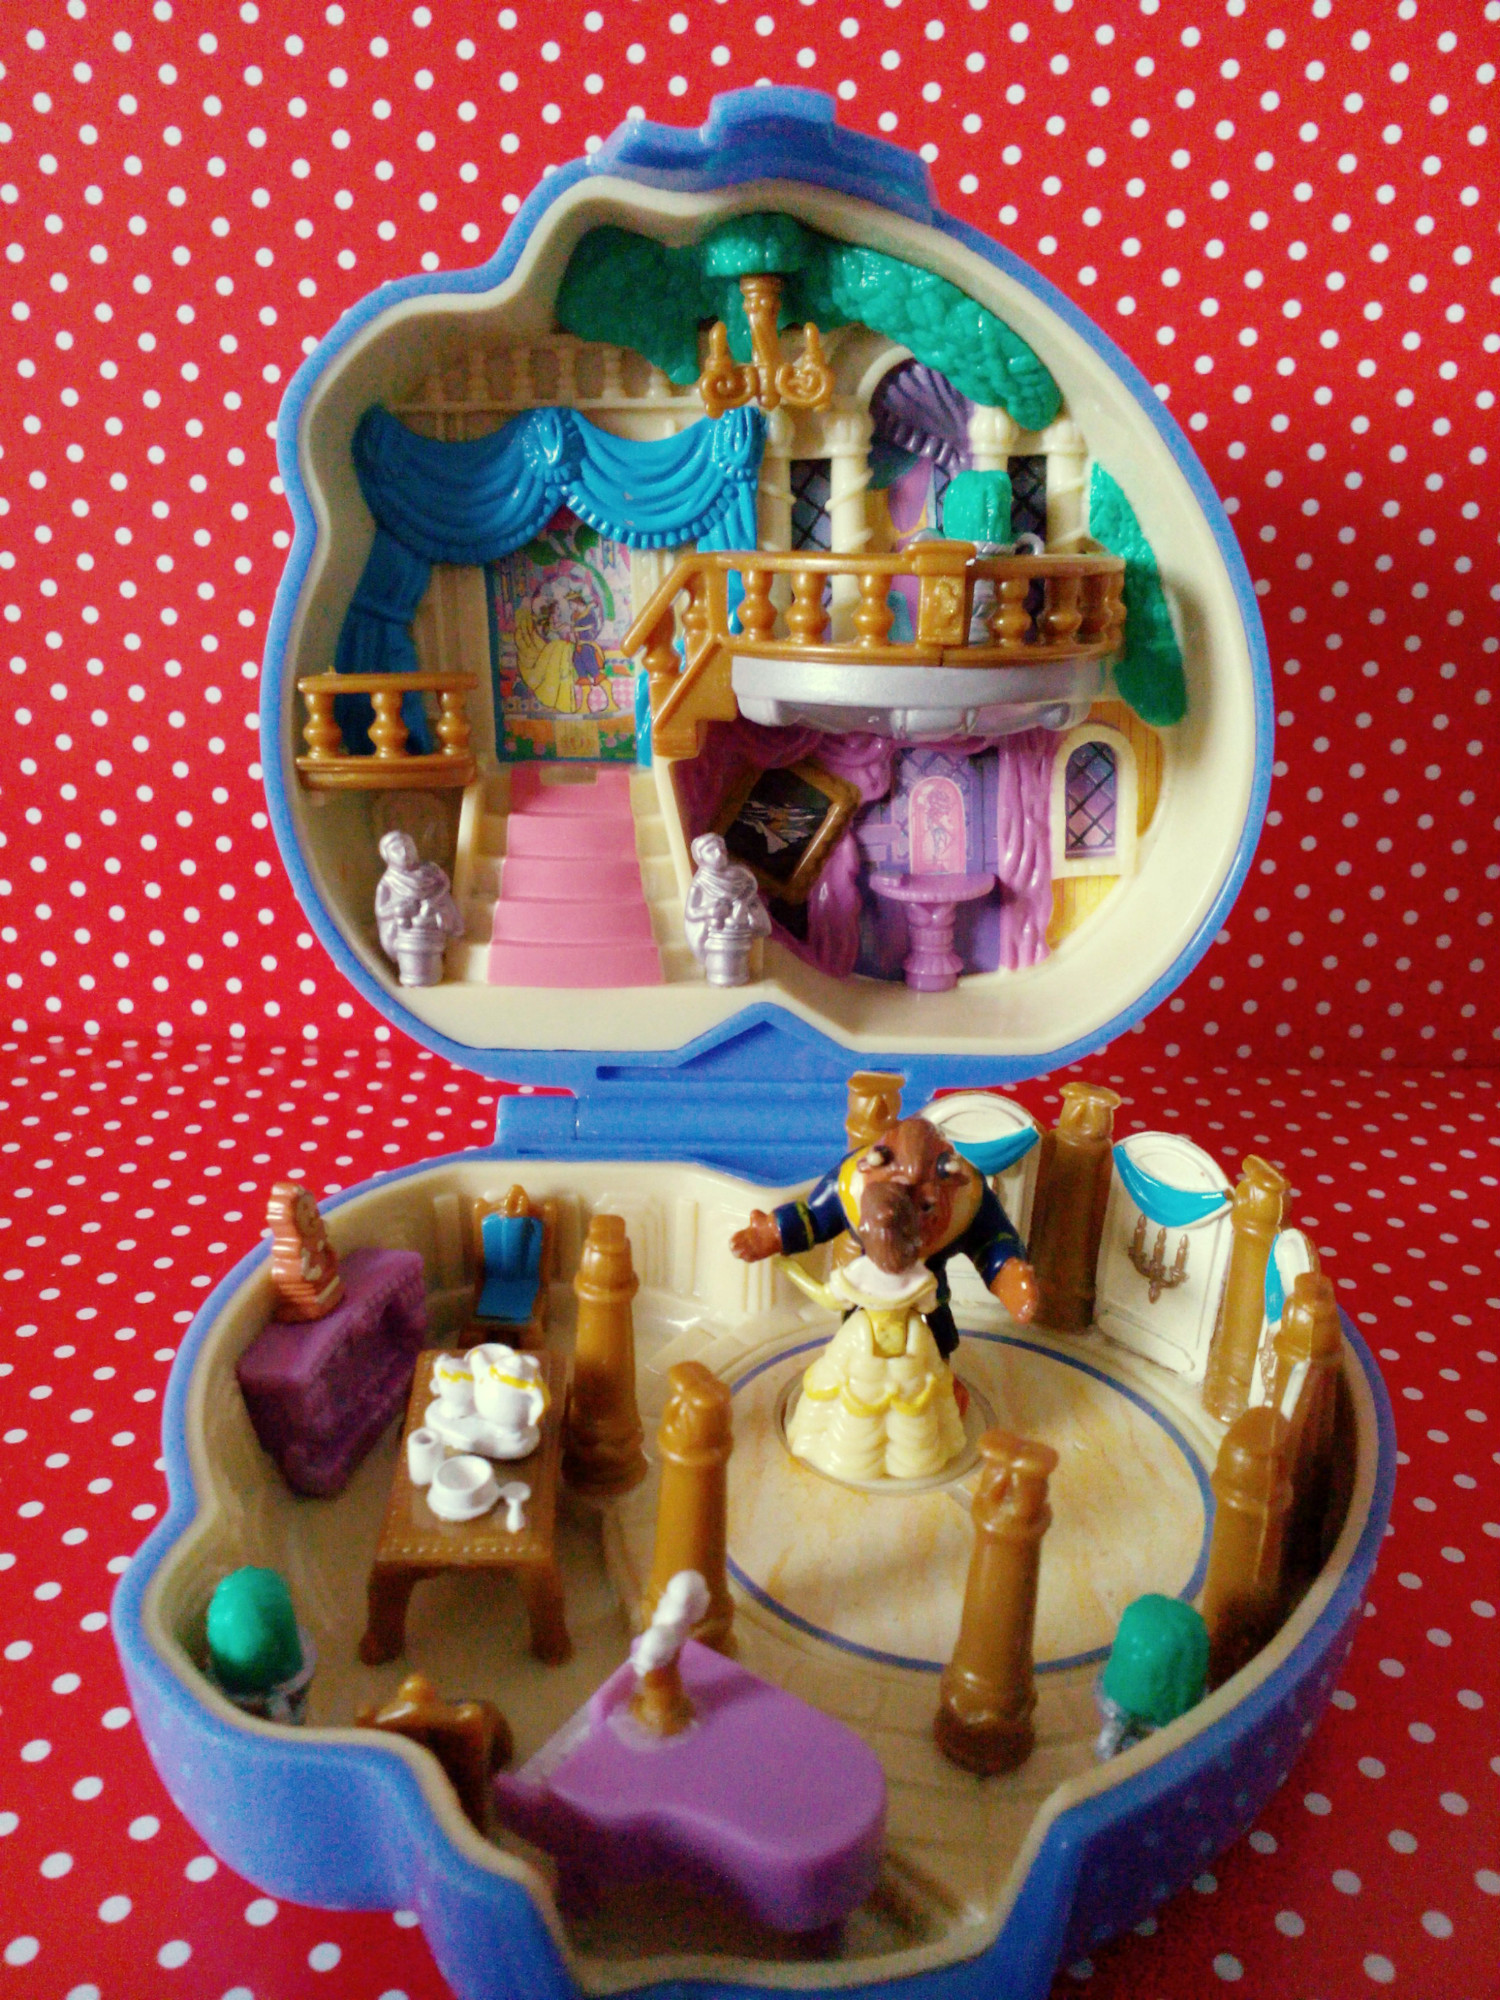 polly pocket la belle et la bête